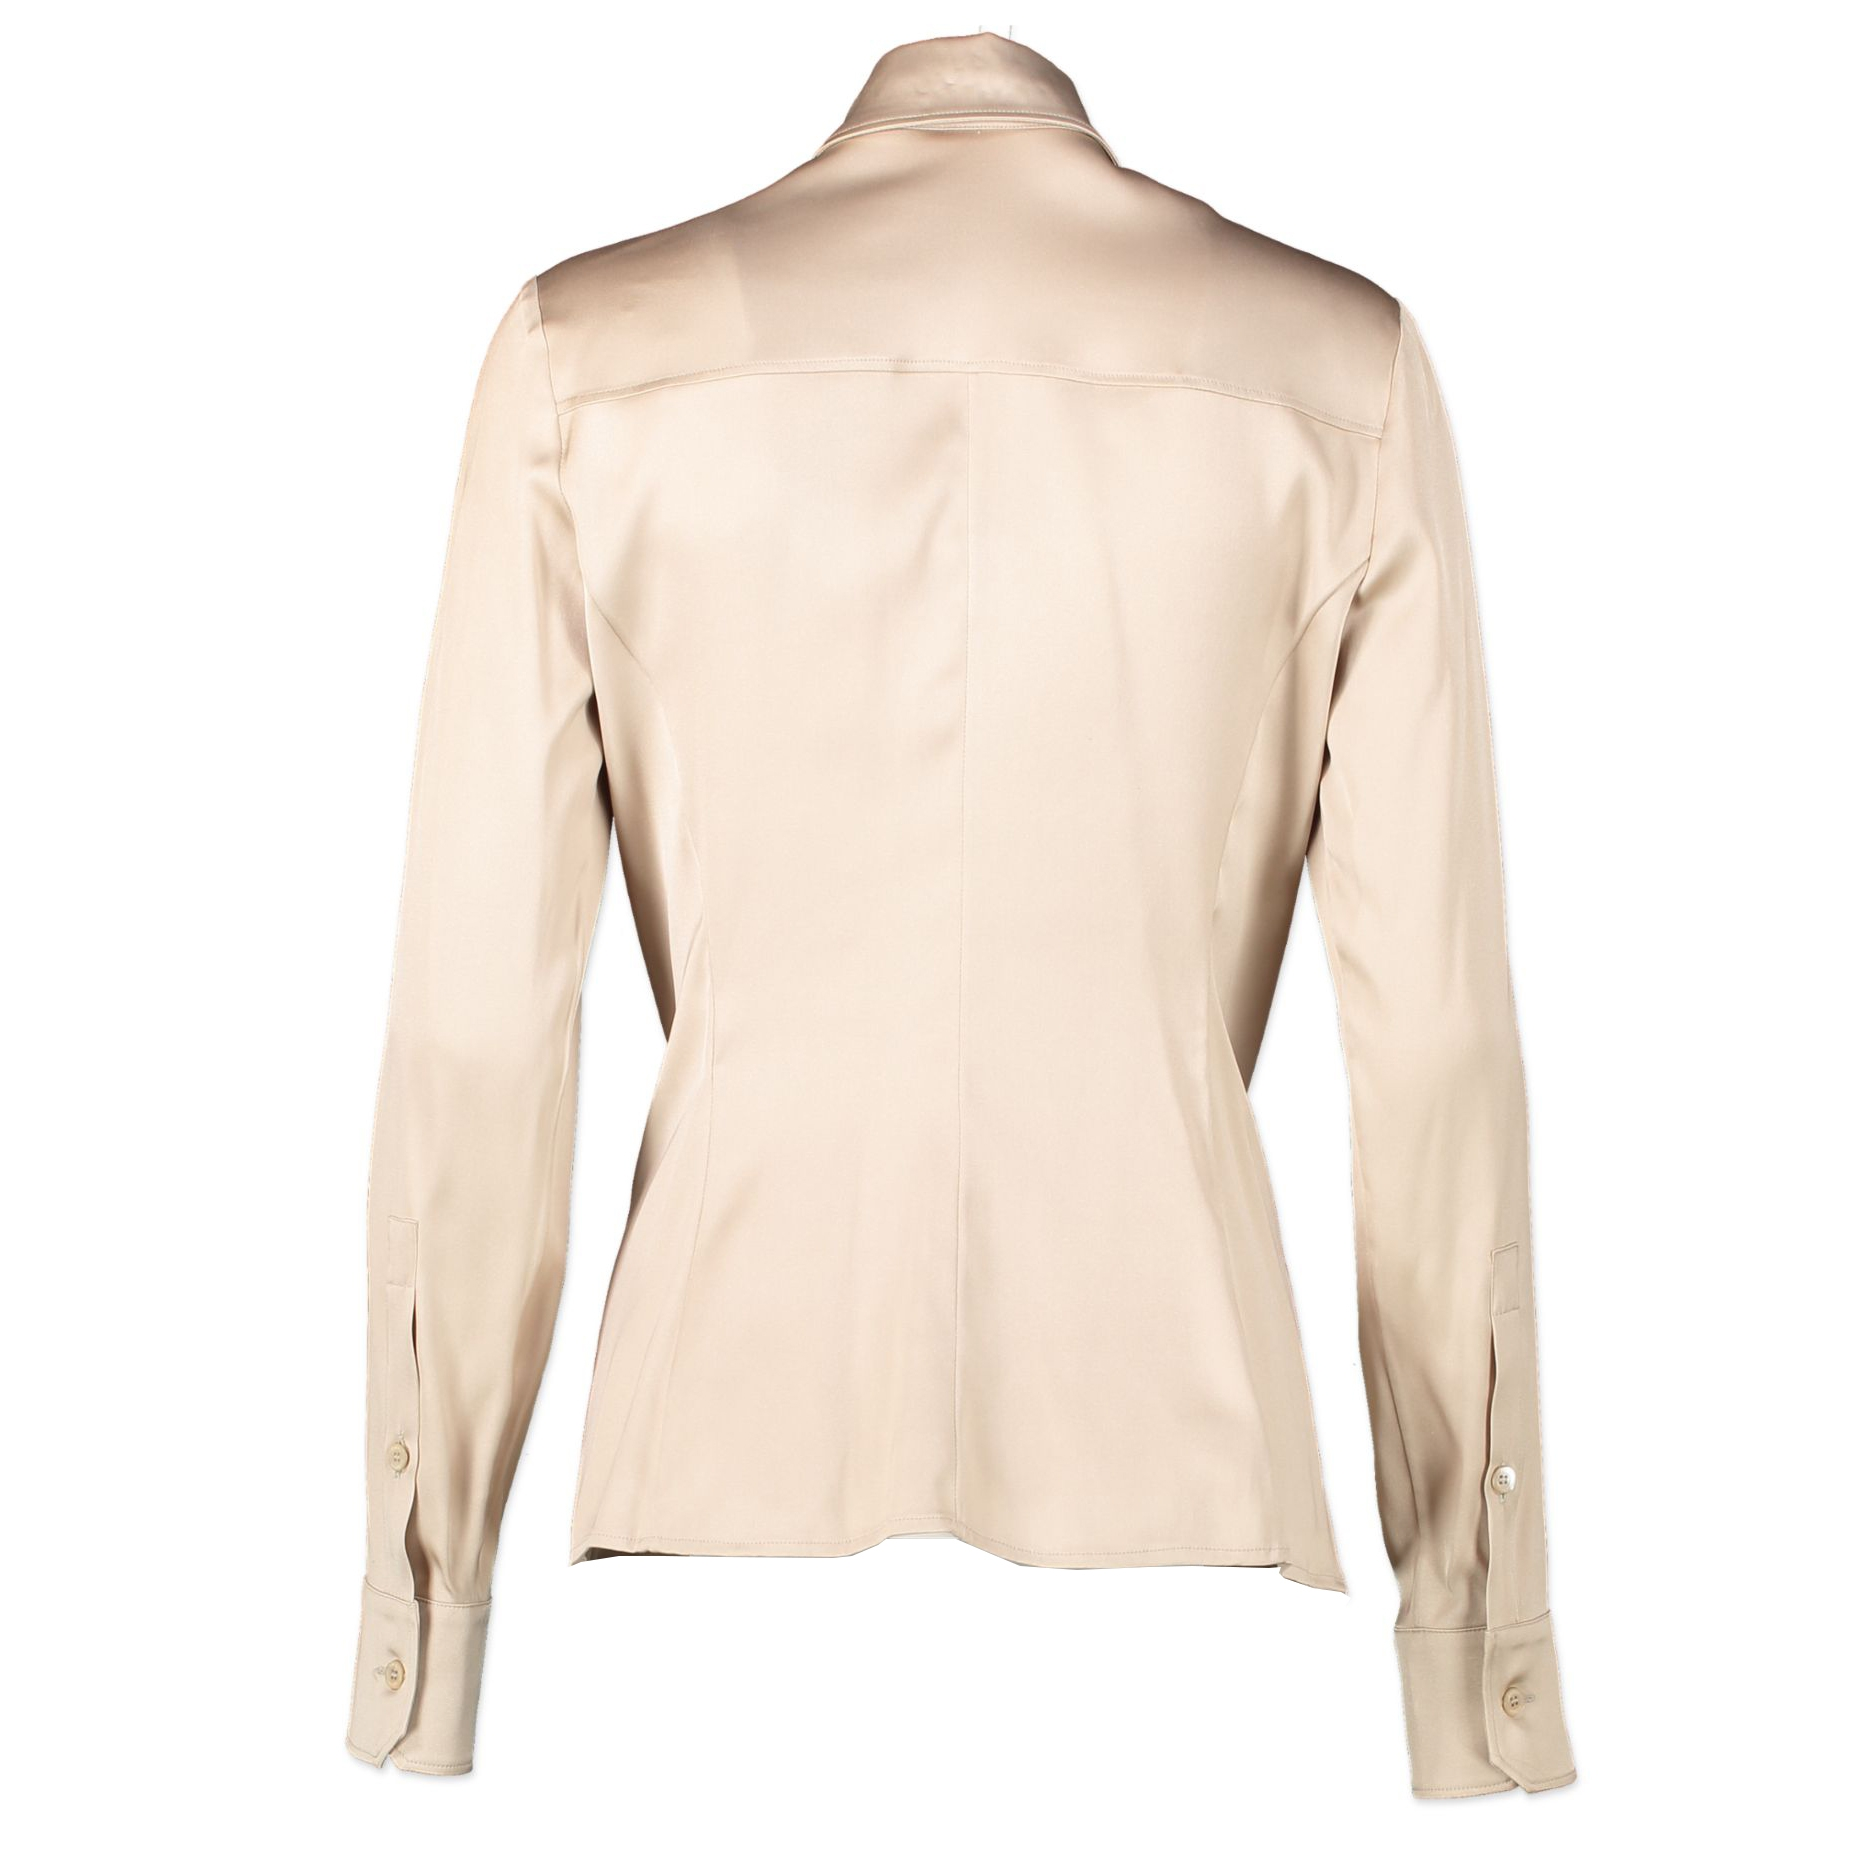 Gucci Beige Silk Blouse - IT 38